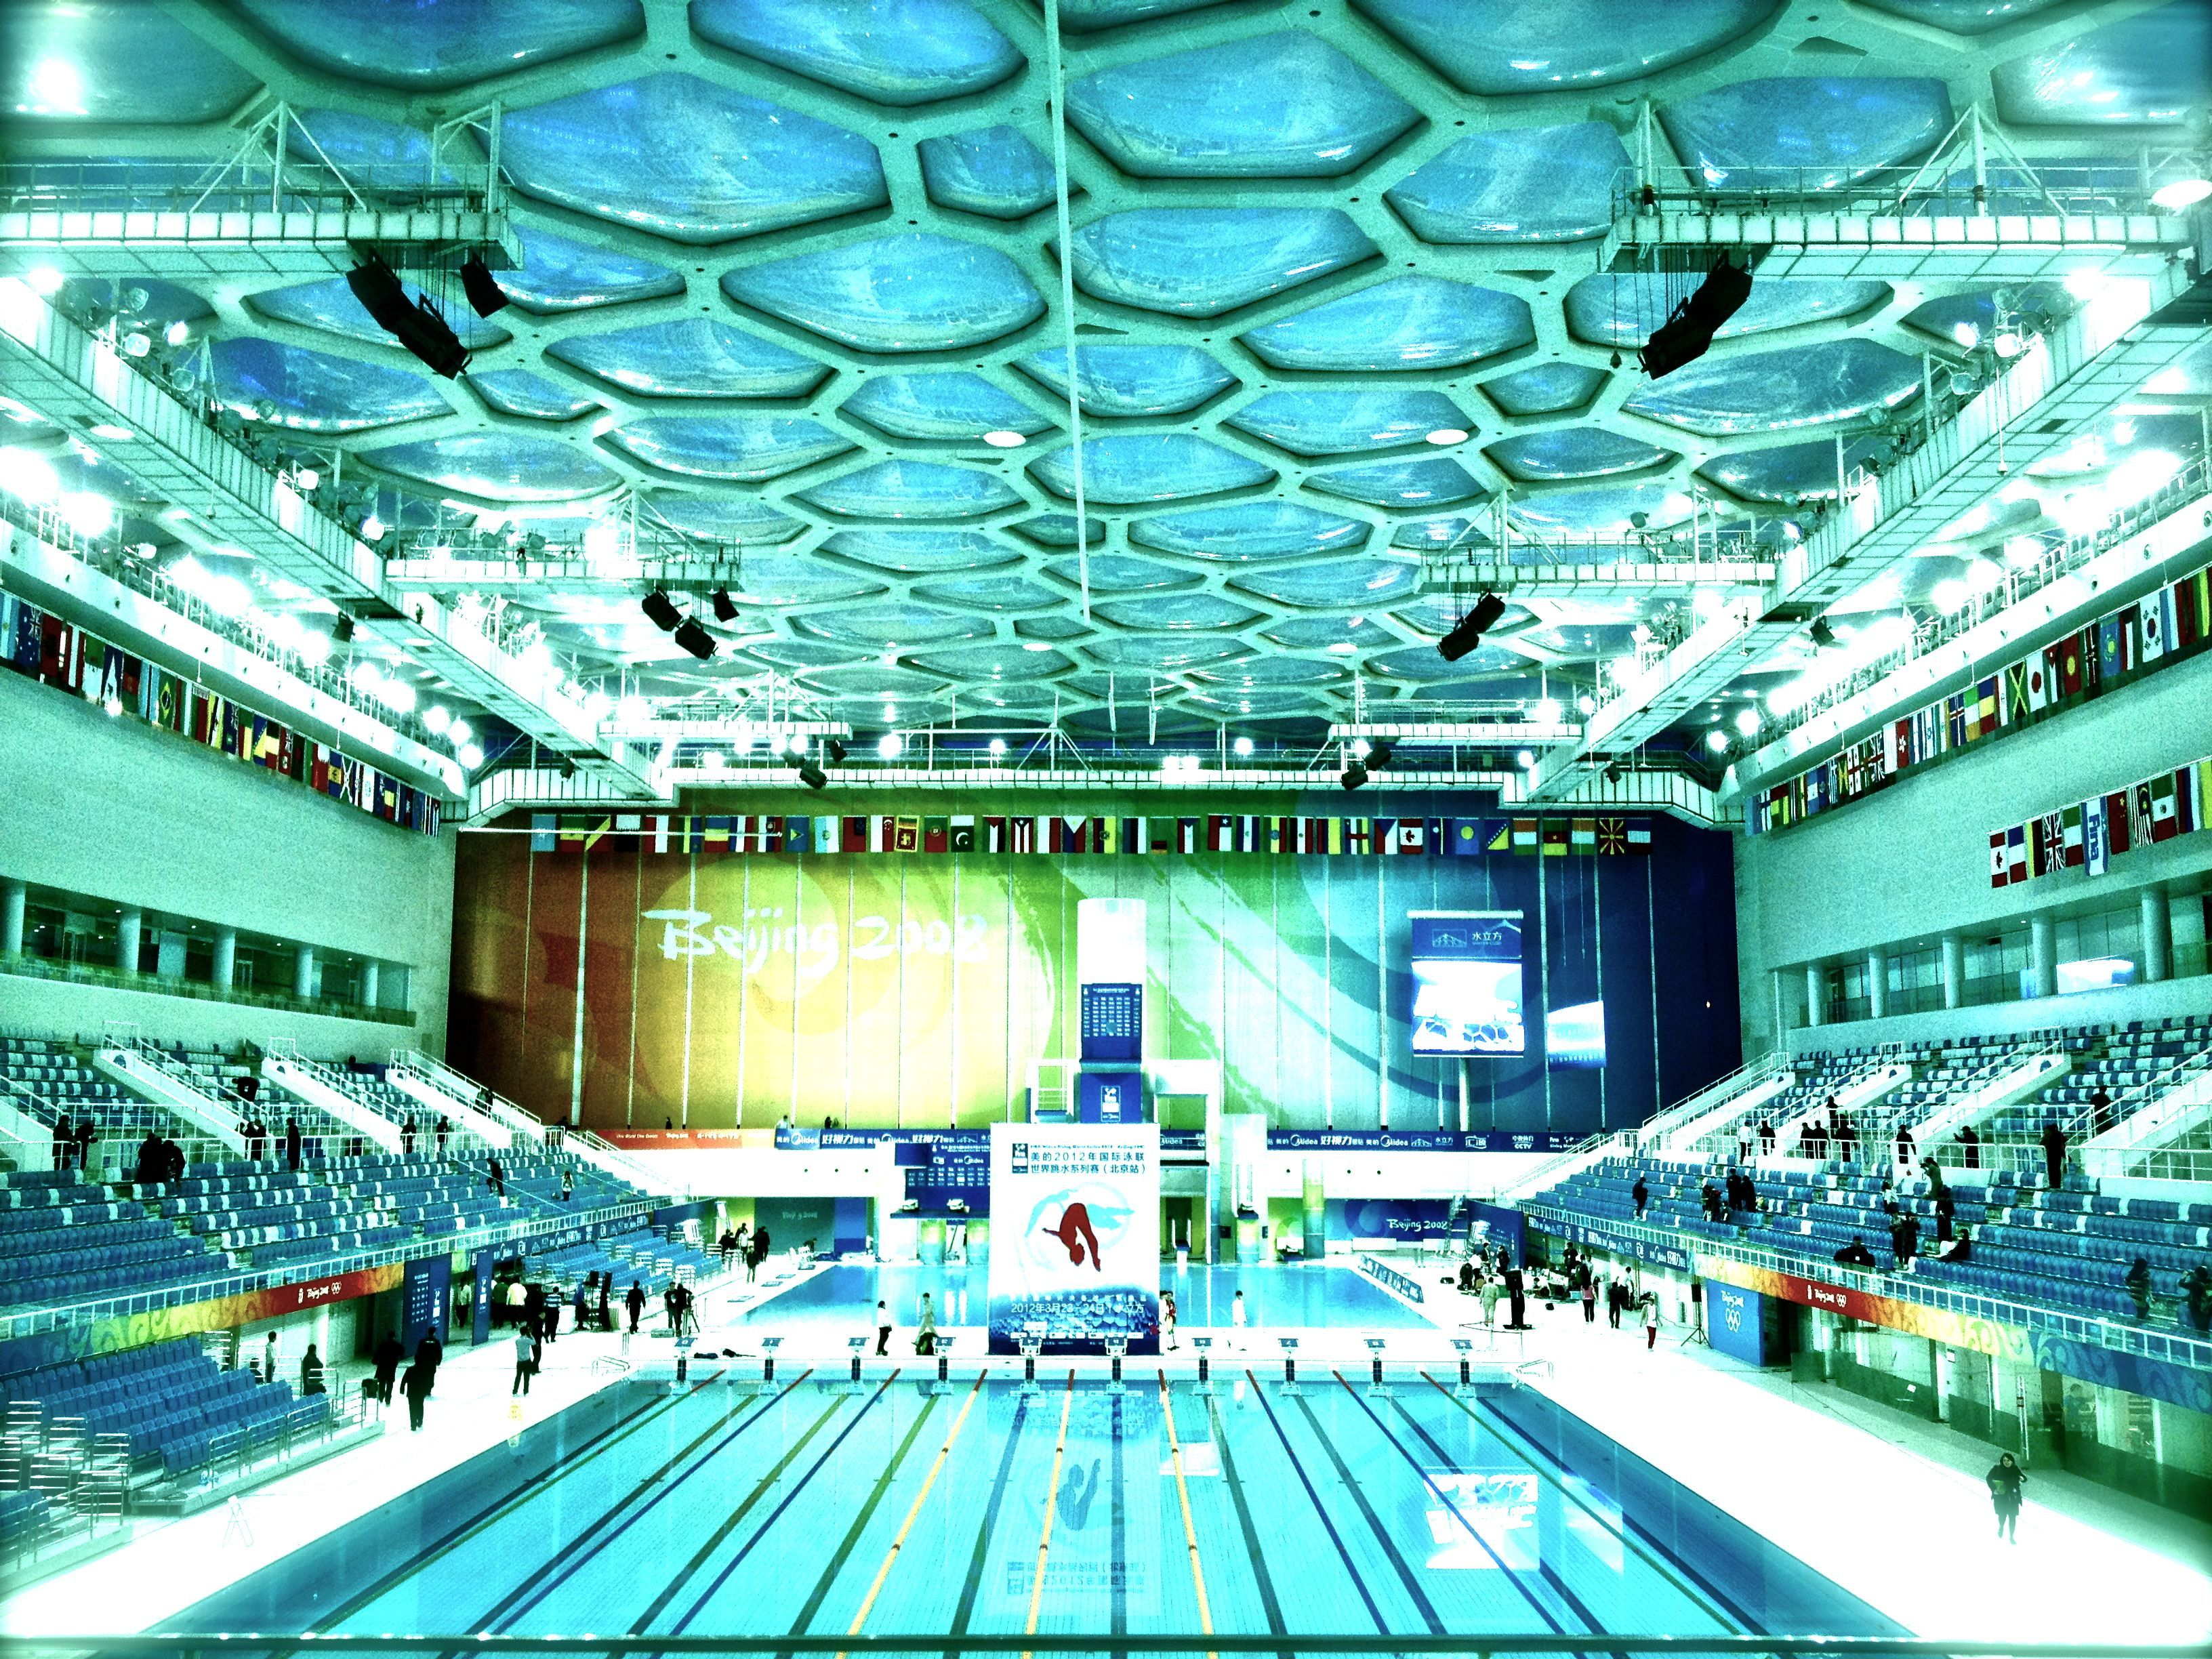 Beijing olympic swimming pool swimming quotes pinterest - Olympic swimming pool ...